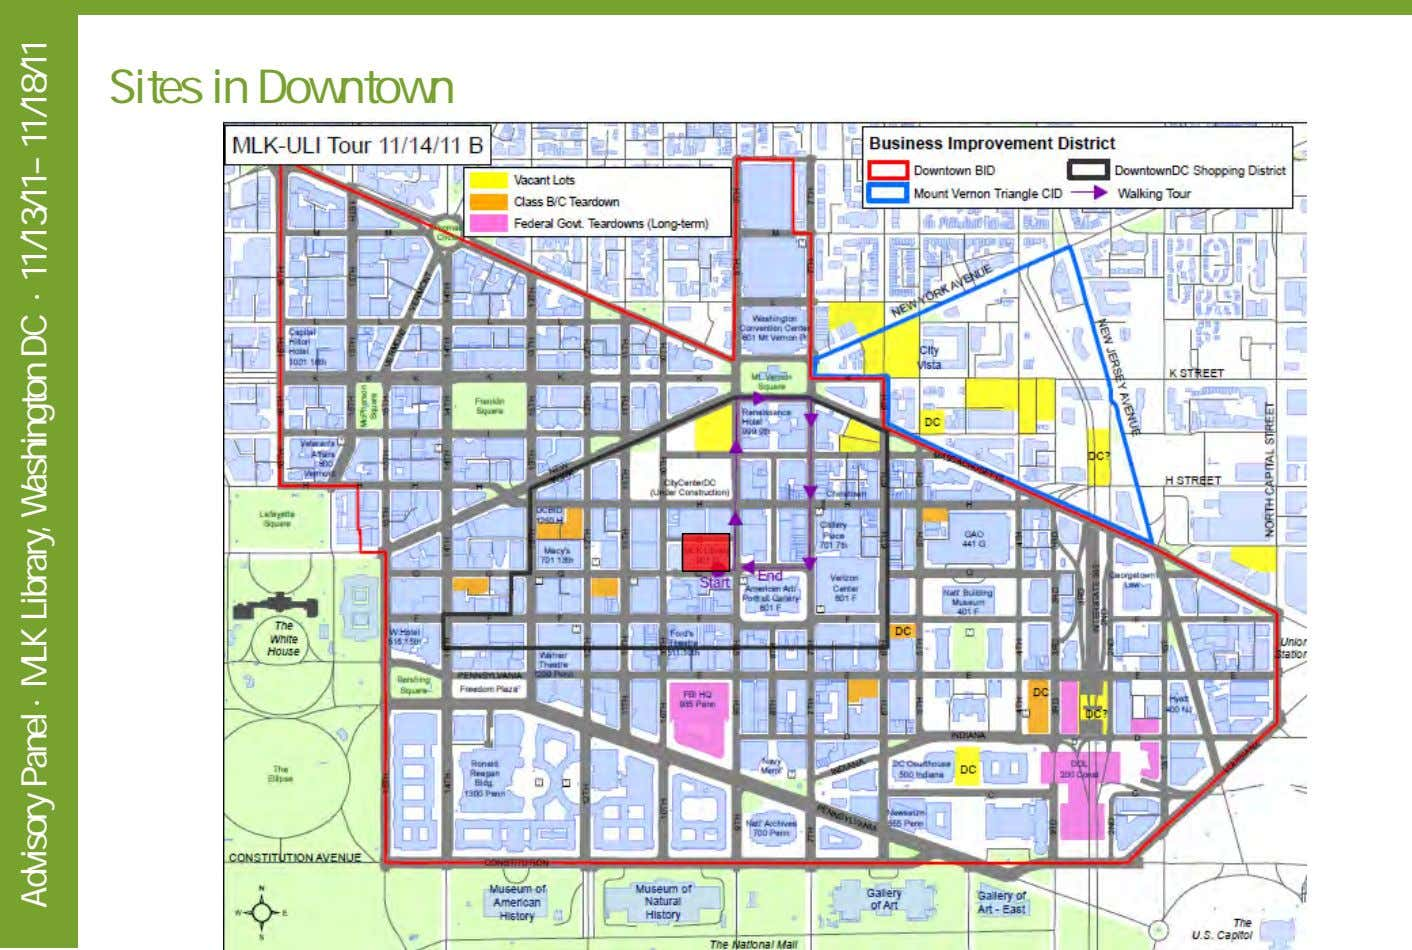 Sites in Downtown Advisory Panel · MLK Library, Washington DC · 11/13/11– 11/18/11